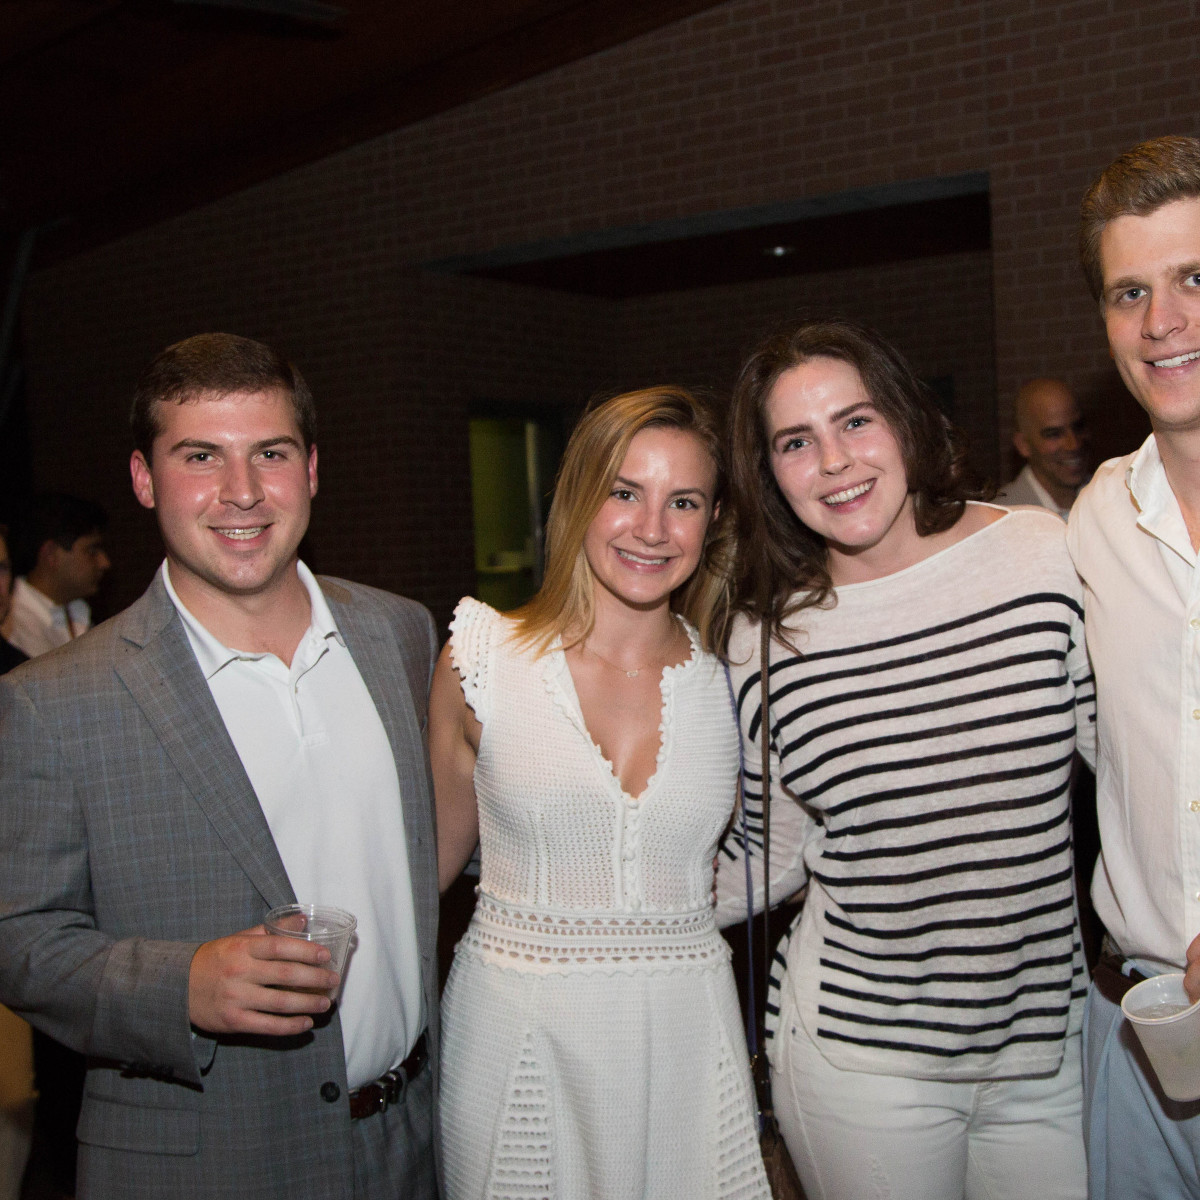 Urban Green Overboard party, Jarrod McCabe, Brandi Armstrong, Sloan Childress, William Cumins